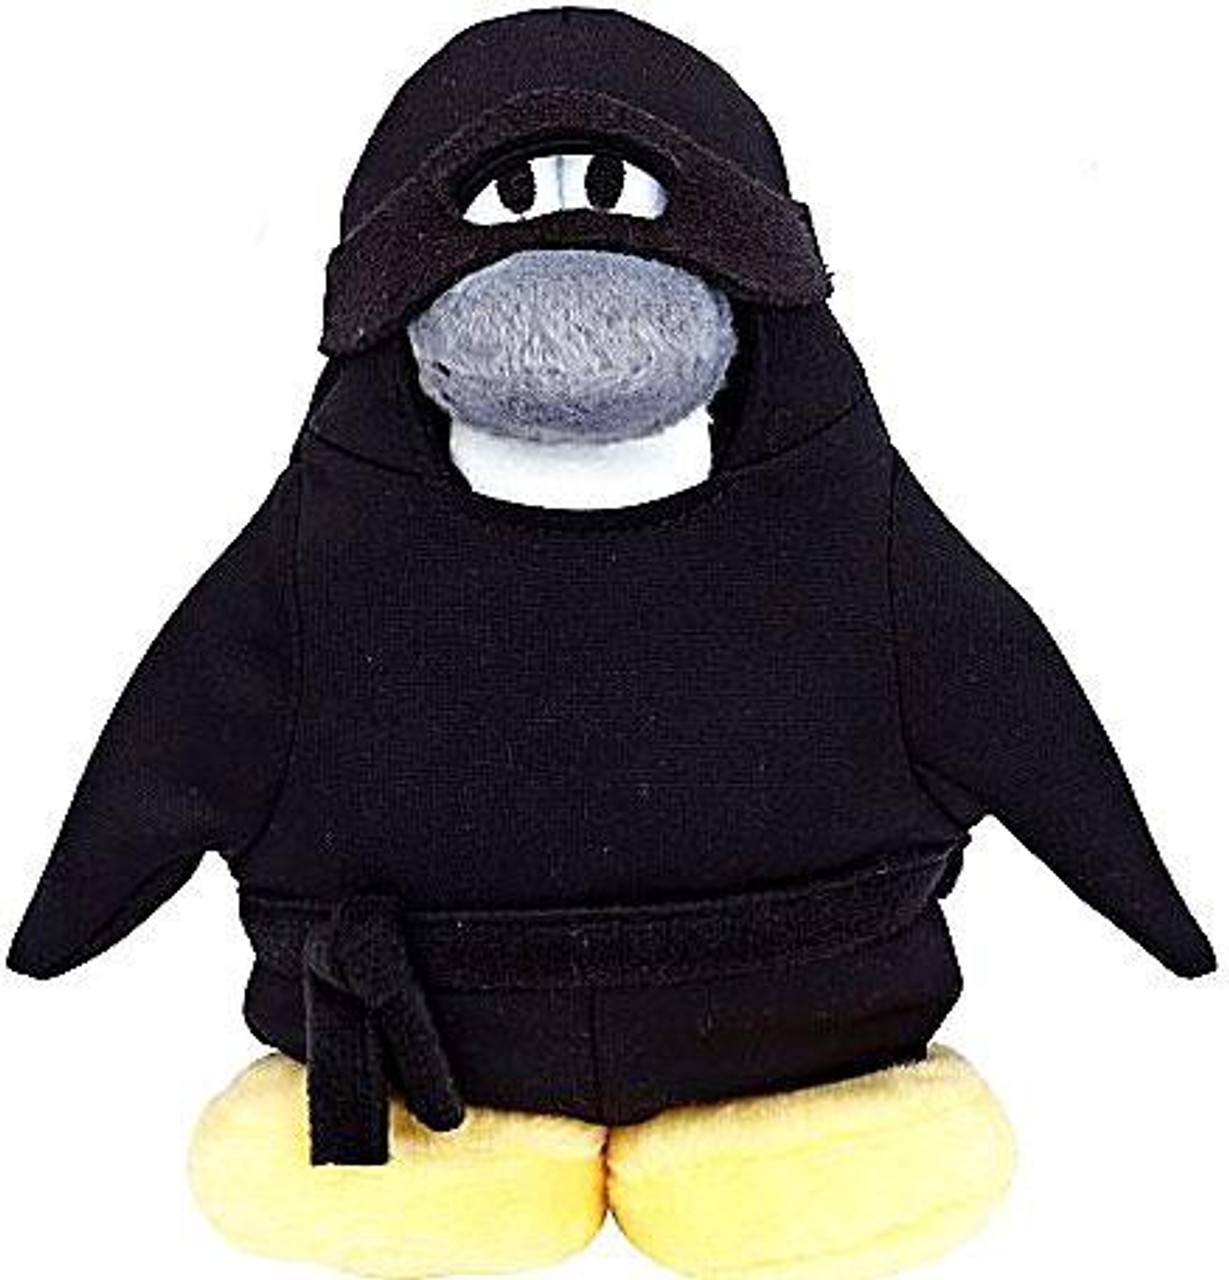 Club Penguin Series 6 Ninja 6.5-Inch Plush Figure [Version 2]